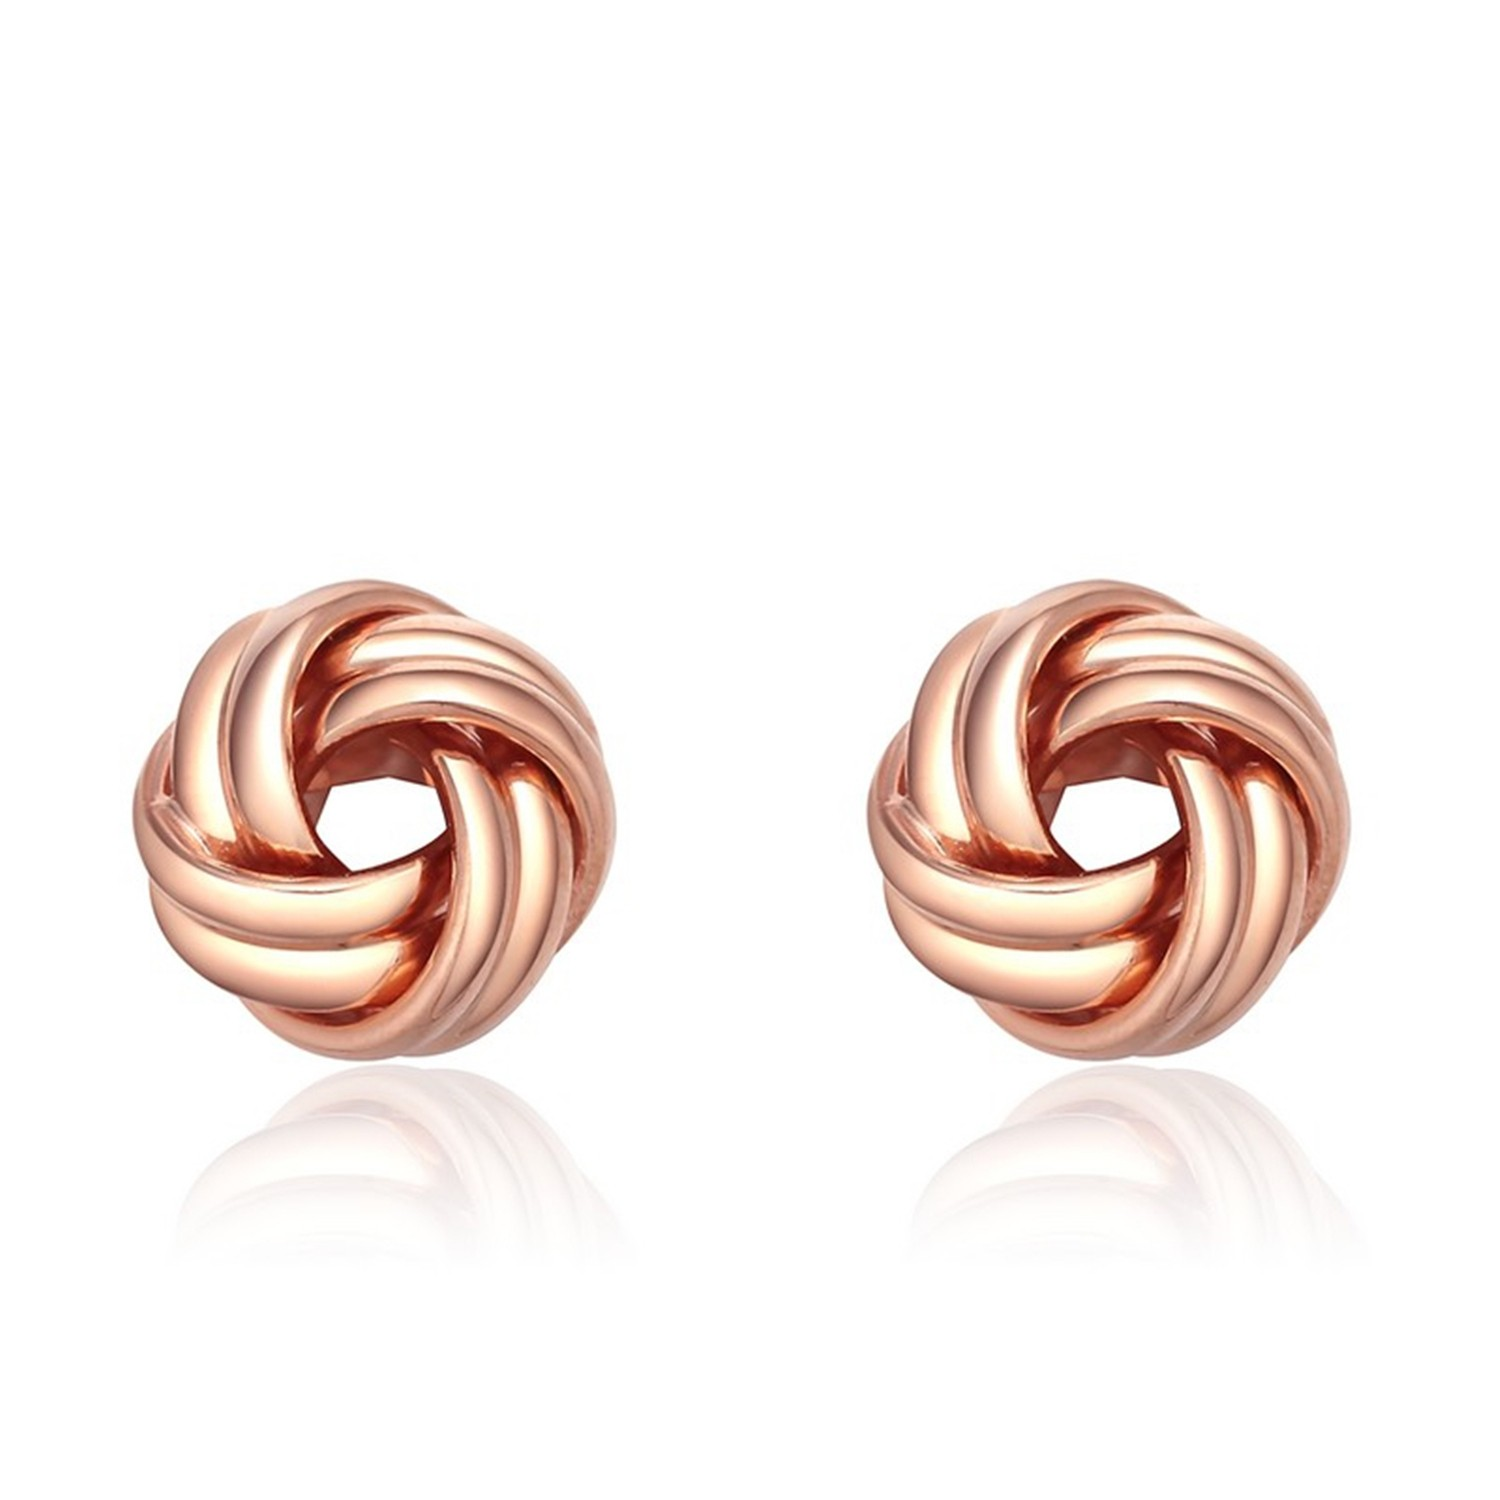 Jewelry Rose Gold Plated Sterling Sliver Hoop Stud Fashion Earrings For Women